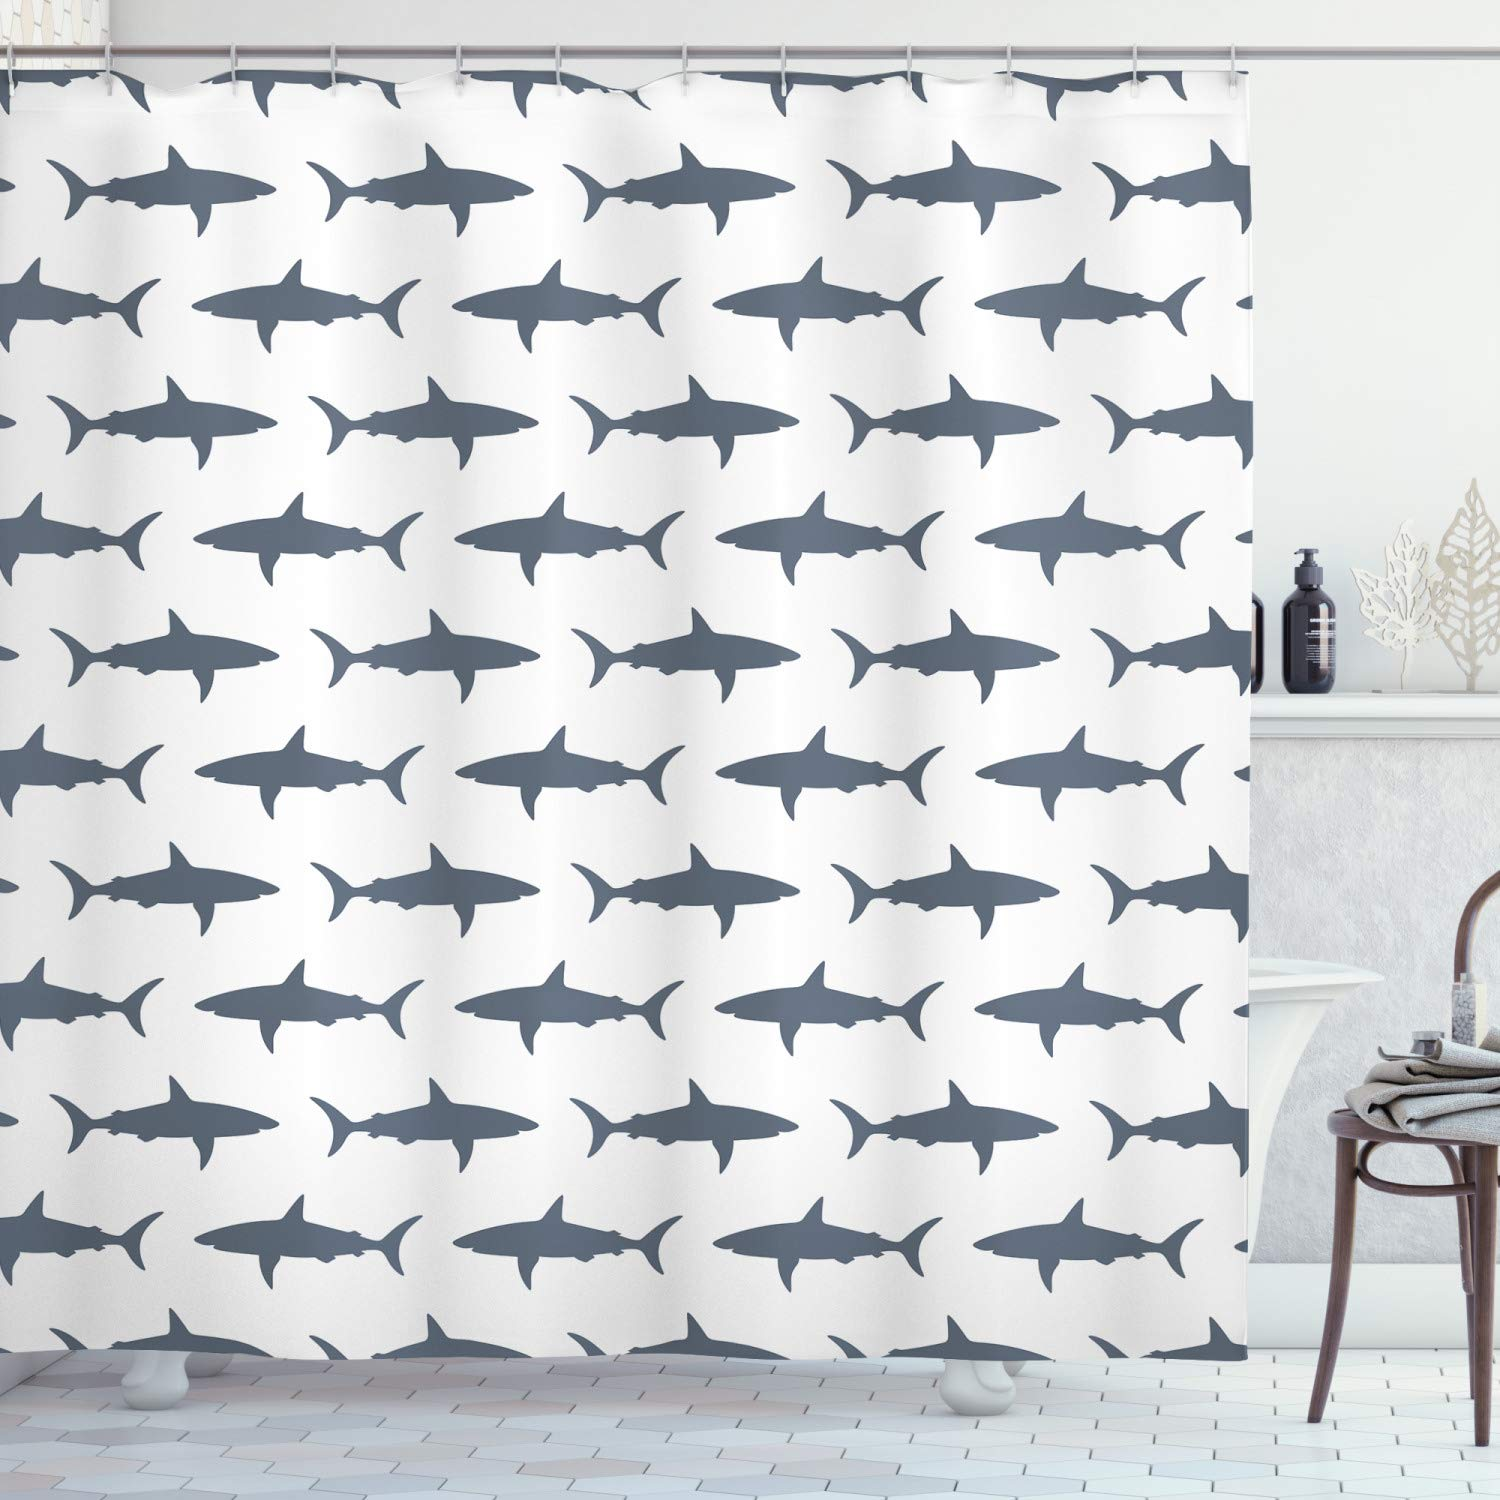 Ambesonne Sea Animals Decor Collection, Sharks Swimming Horizontal Silhouettes Traveler Powerful Danger Design Pattern, Polyester Fabric Bathroom Shower Curtain Set with Hooks, Gray and White